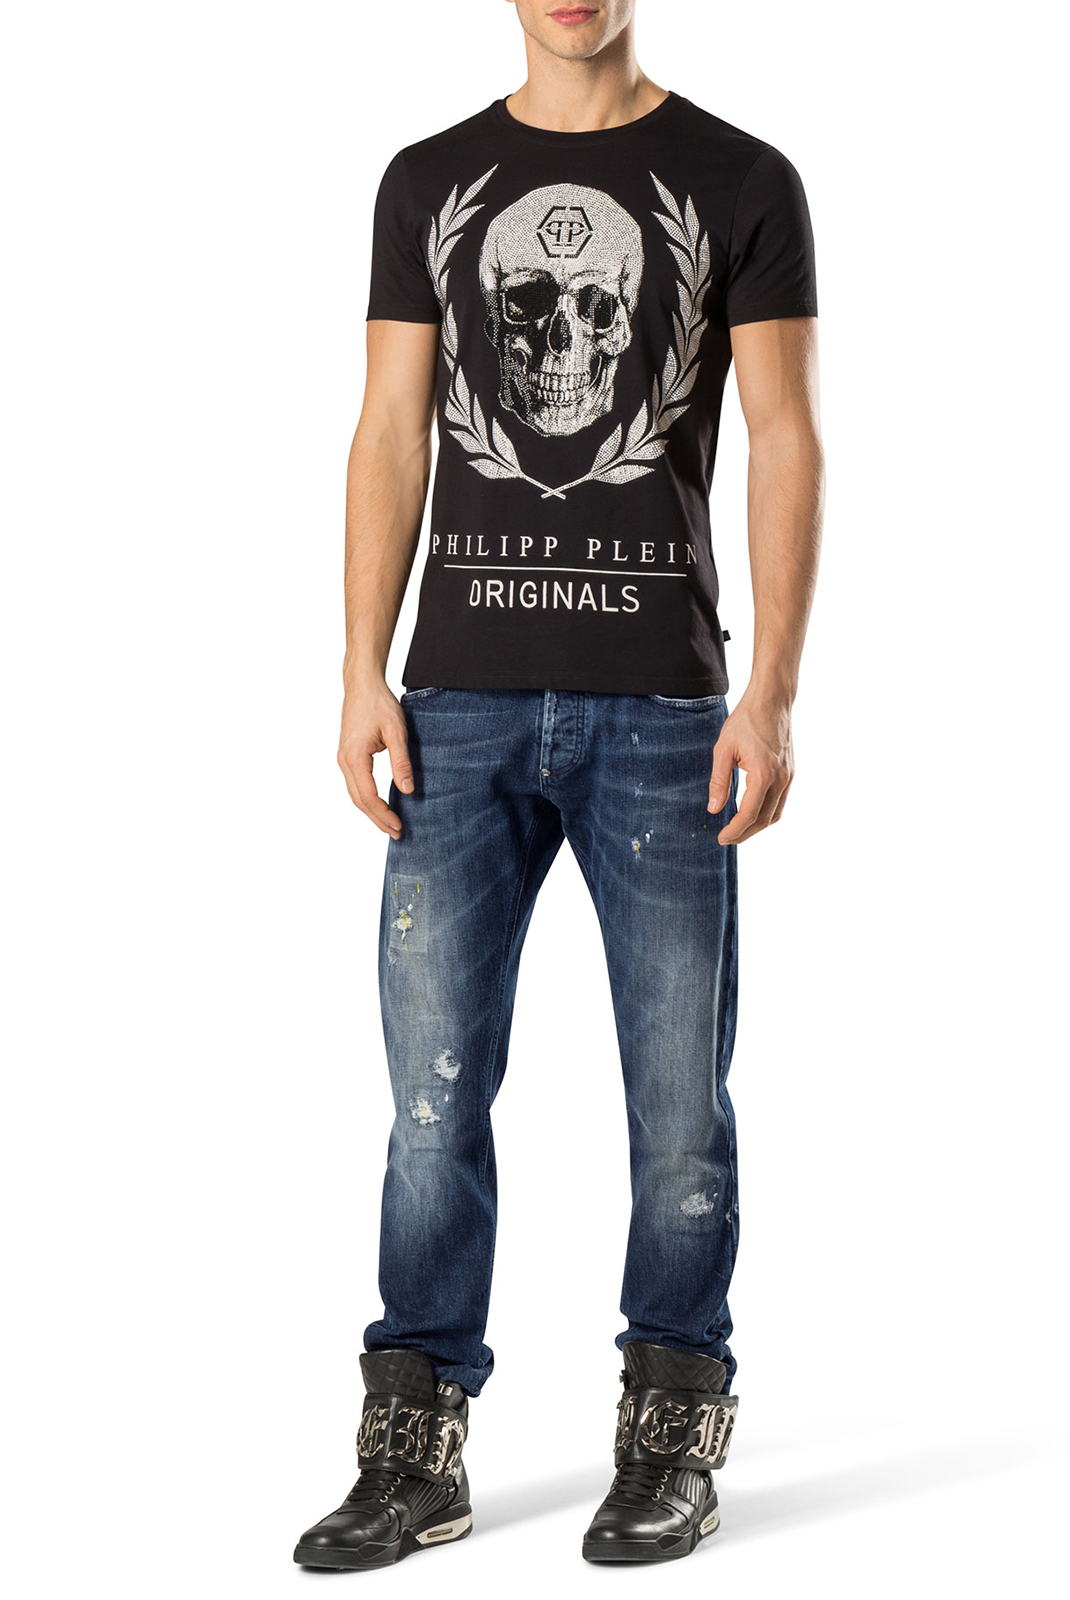 slim / skinny  Philipp plein MDT0129 SOUND 65WA HIP HOP STAR